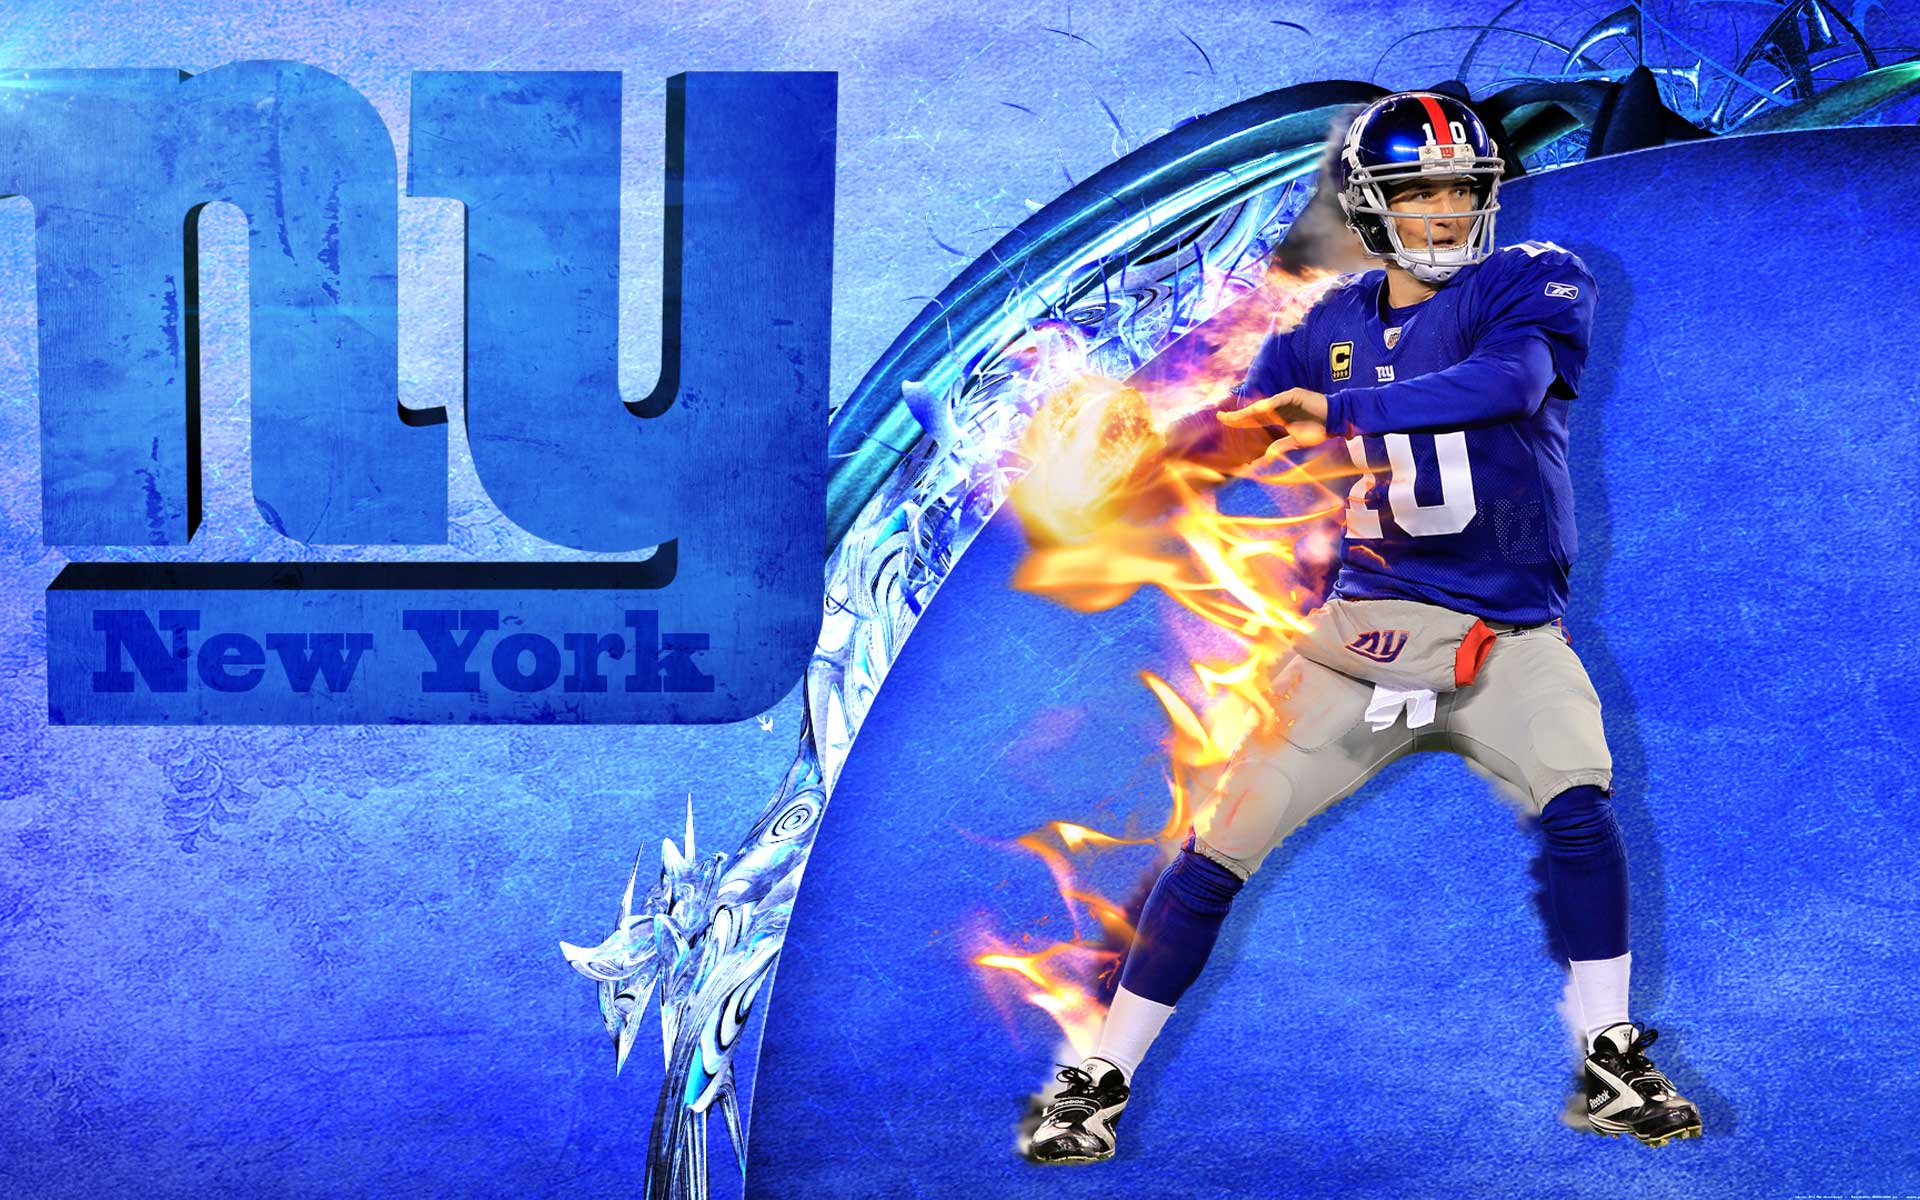 Eli Manning Wallpapers HD - Page 3 of 3 - wallpaper.wiki